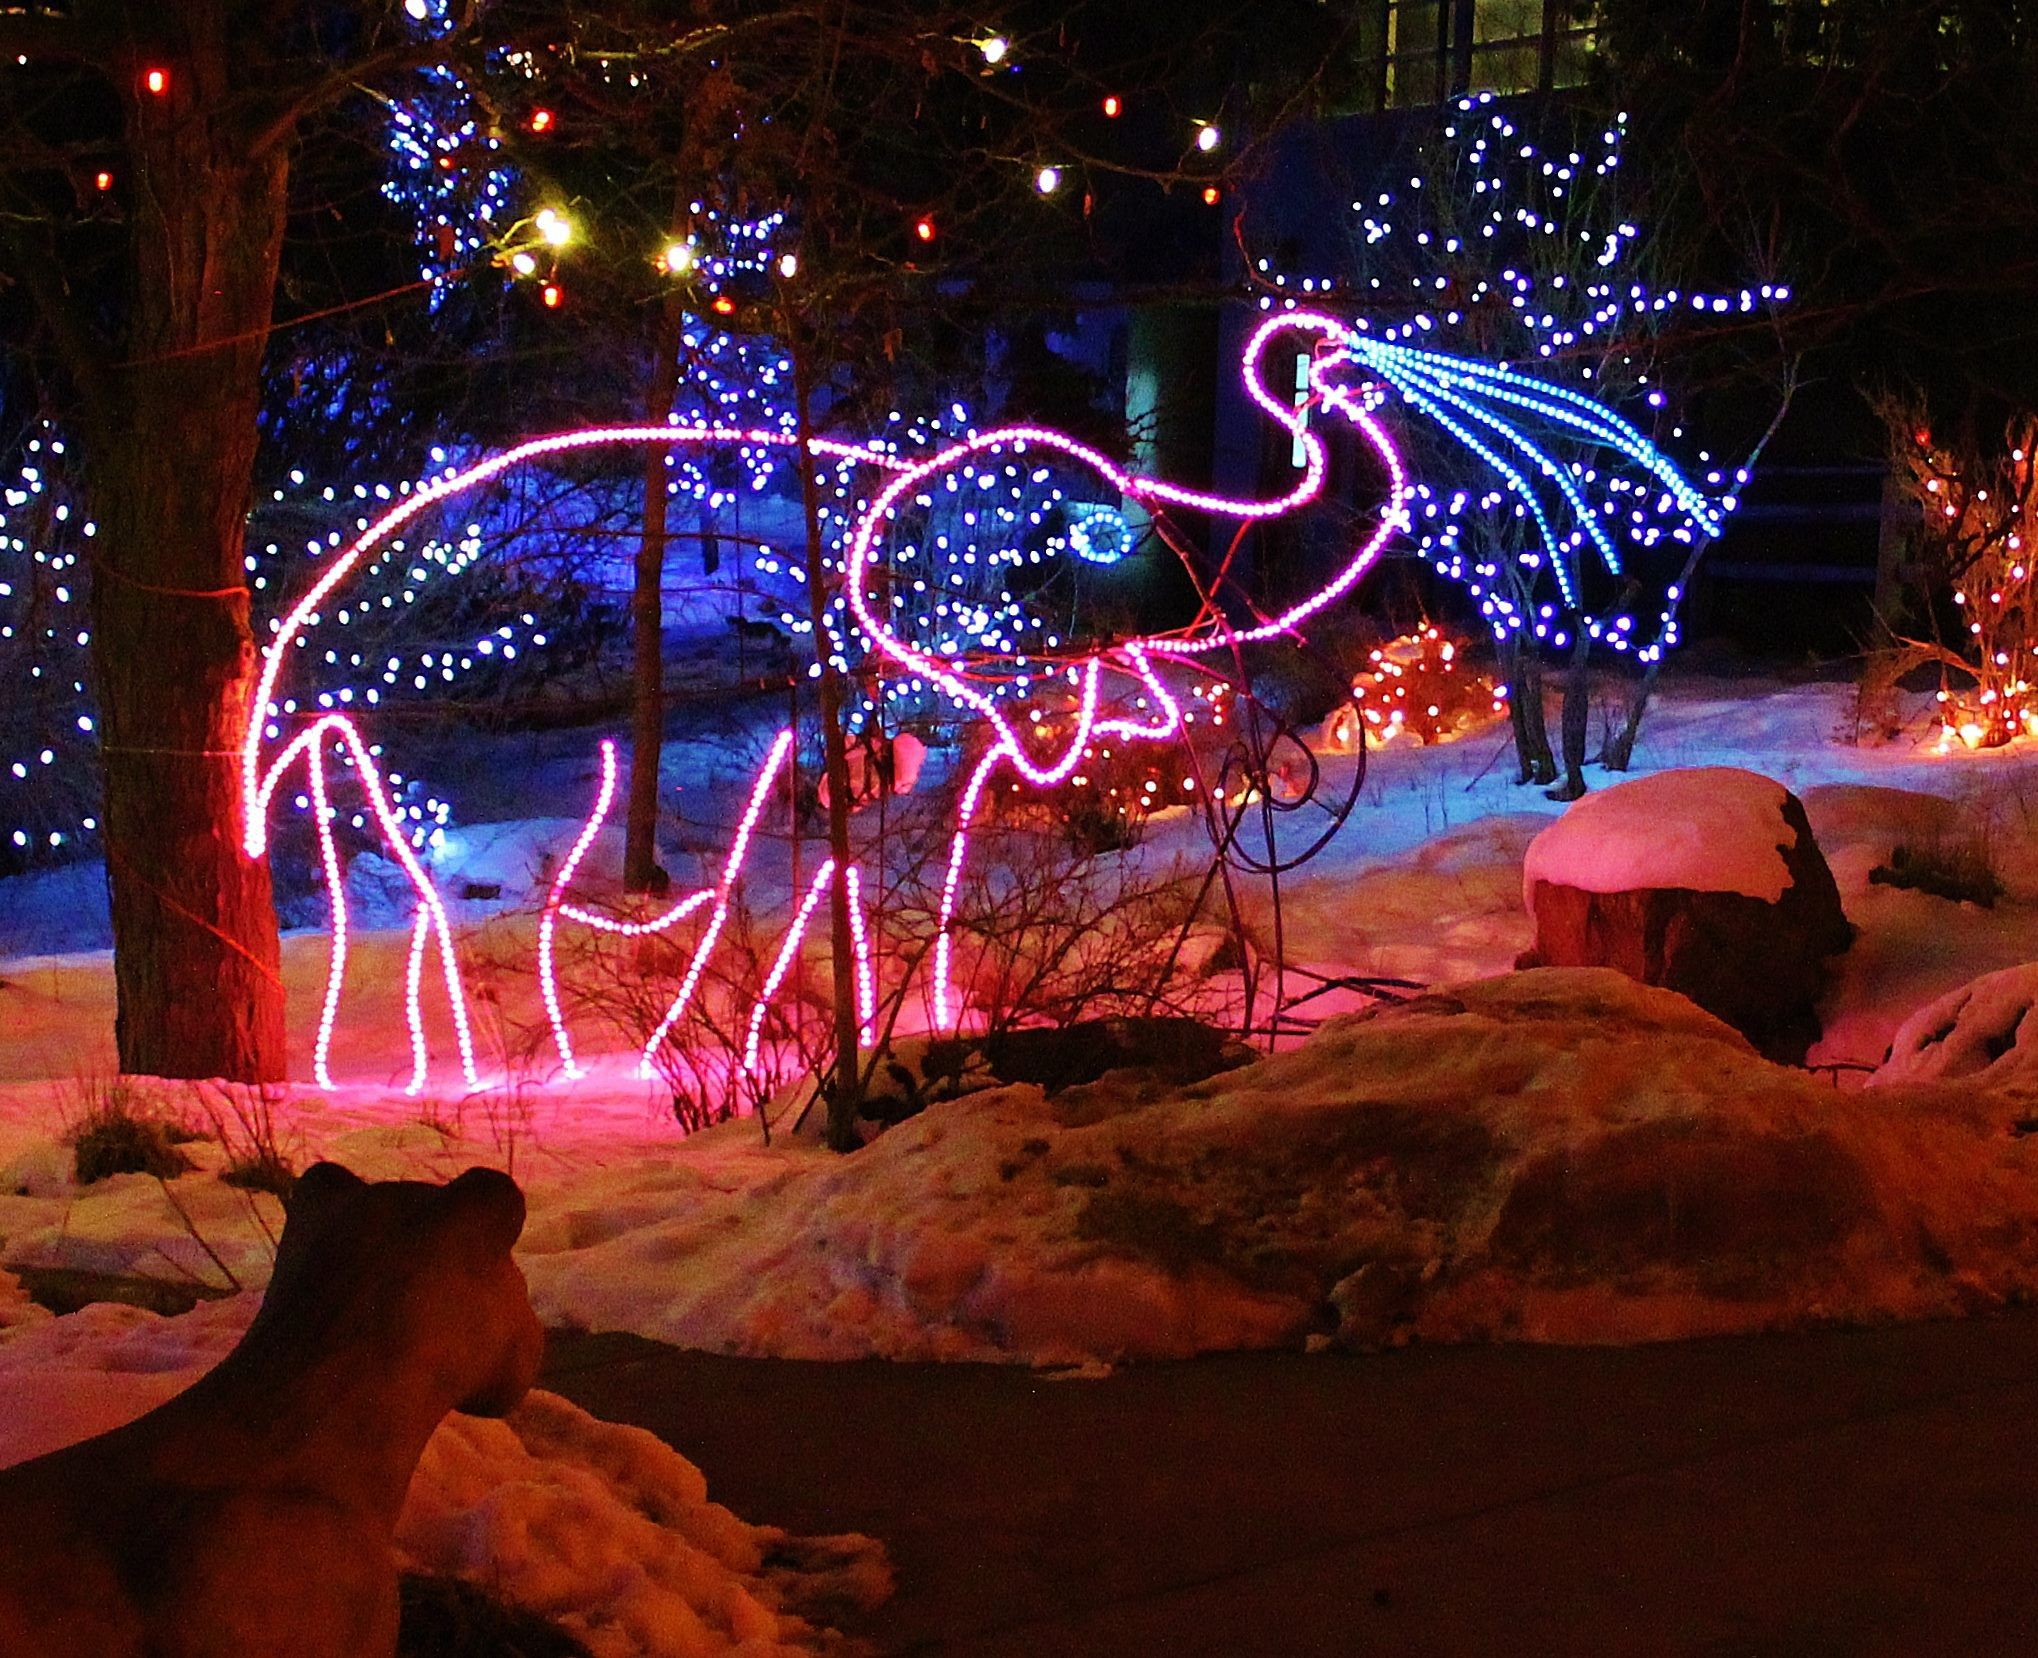 Colorado Springs Christmas Lights 2021 Best Places To See Christmas Lights Around Colorado Springs Cheyenne Mountain Zoo Cheyenne Mountain Colorado Christmas